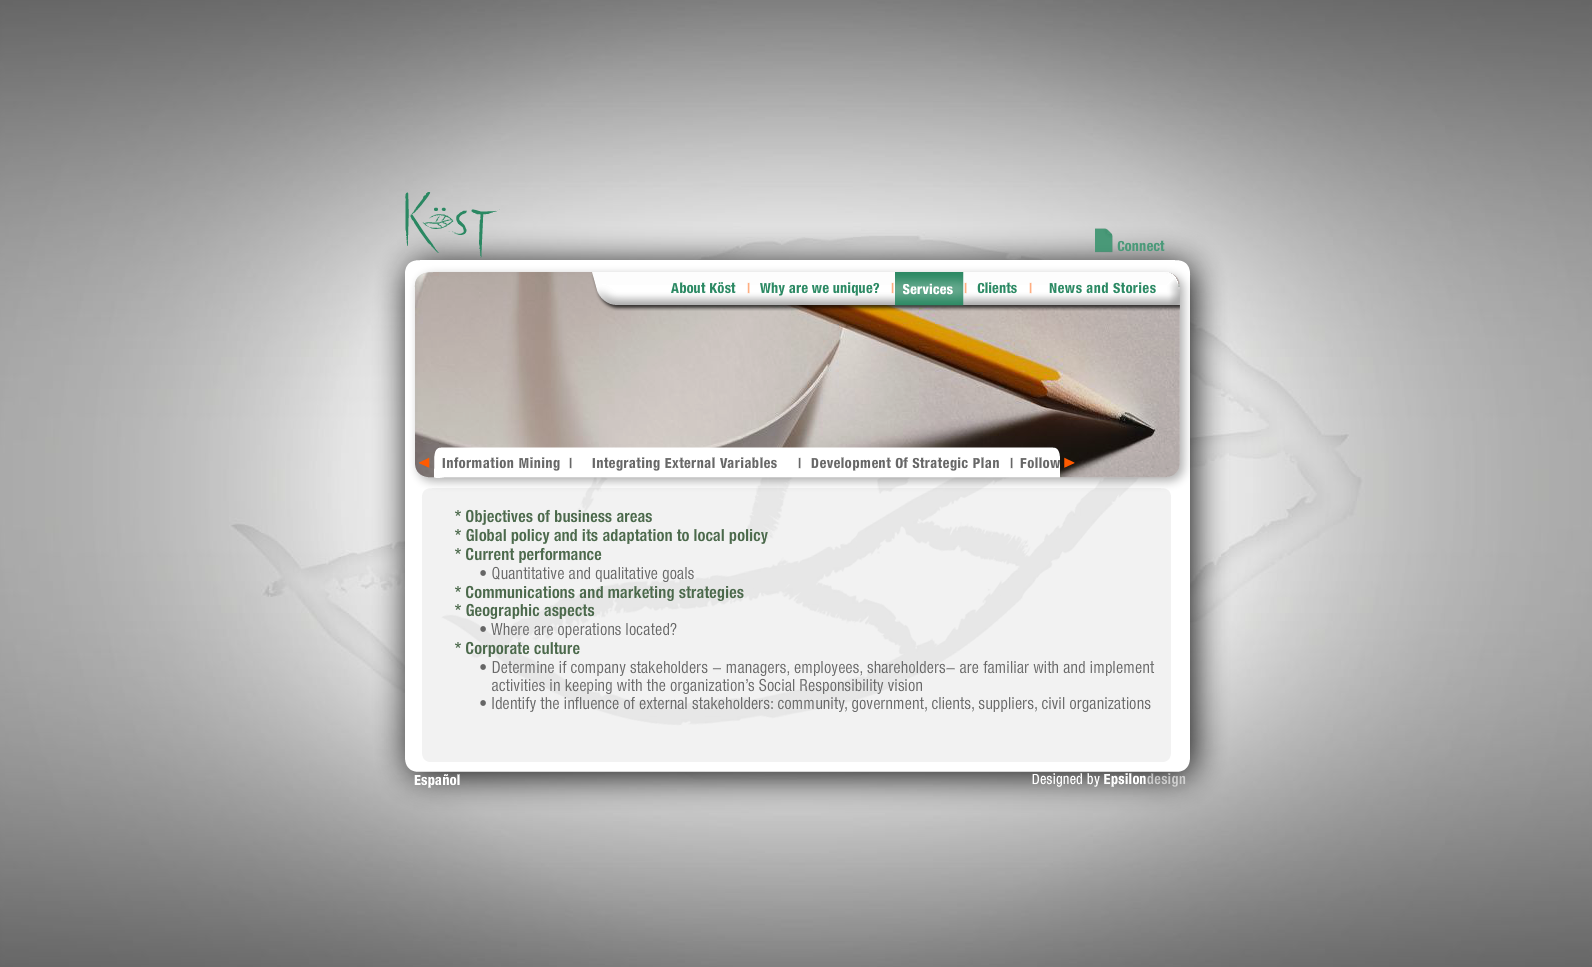 Green Kost - Services (Information Mining)